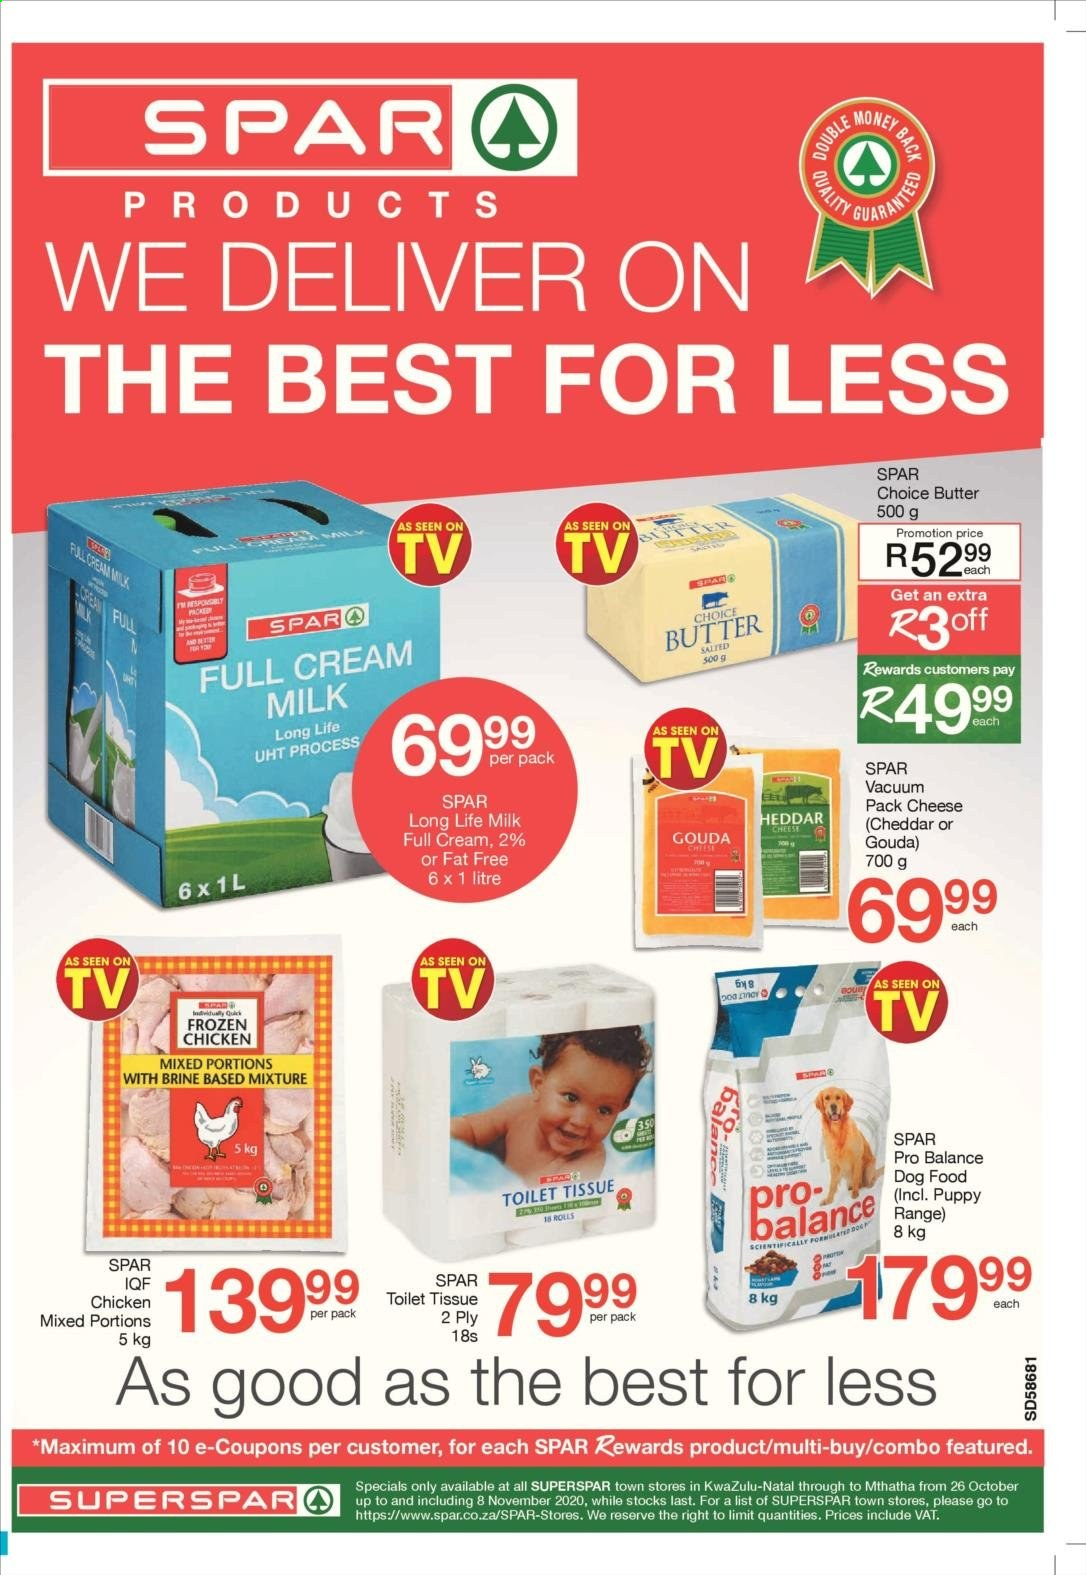 SPAR catalogue  - 10.26.2020 - 11.08.2020 - Sales products - animal food, butter, cream, dog food, gouda, milk, vacuum, cheddar, chicken, cheese, toilet tissue, rolls, long life milk. Page 1.